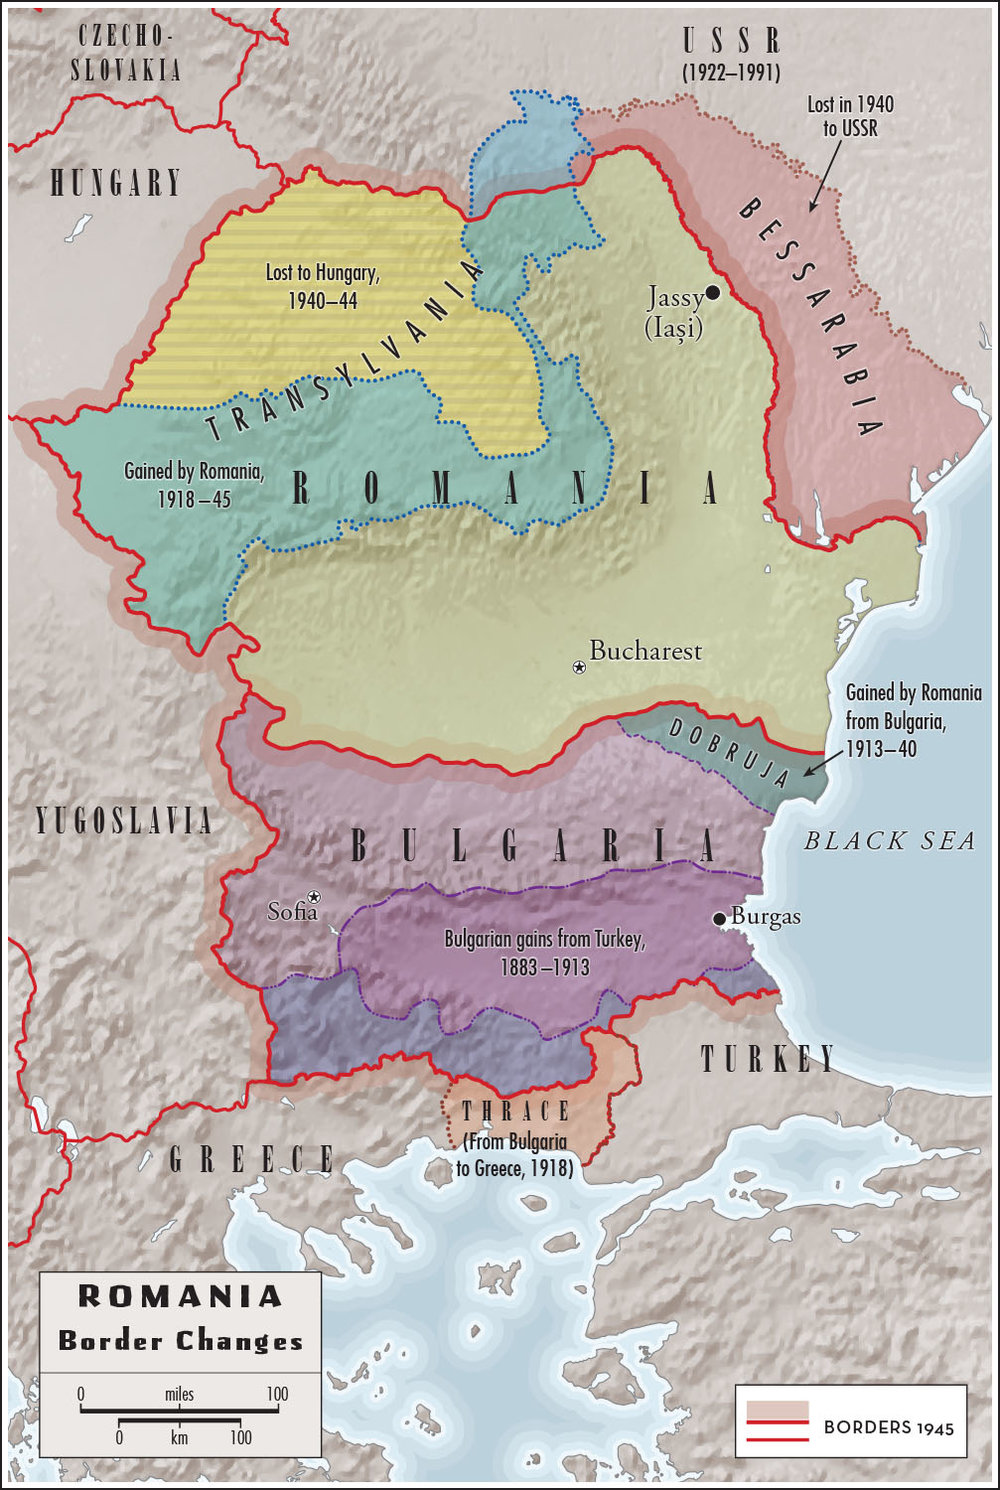 For    In Europe's Shadow: Two Cold Wars and a Thirty-Year Journey Through Romania and Beyond,  by Robert D. Kaplan   (Random House, 2016).  Map copyright © David Lindroth Inc.